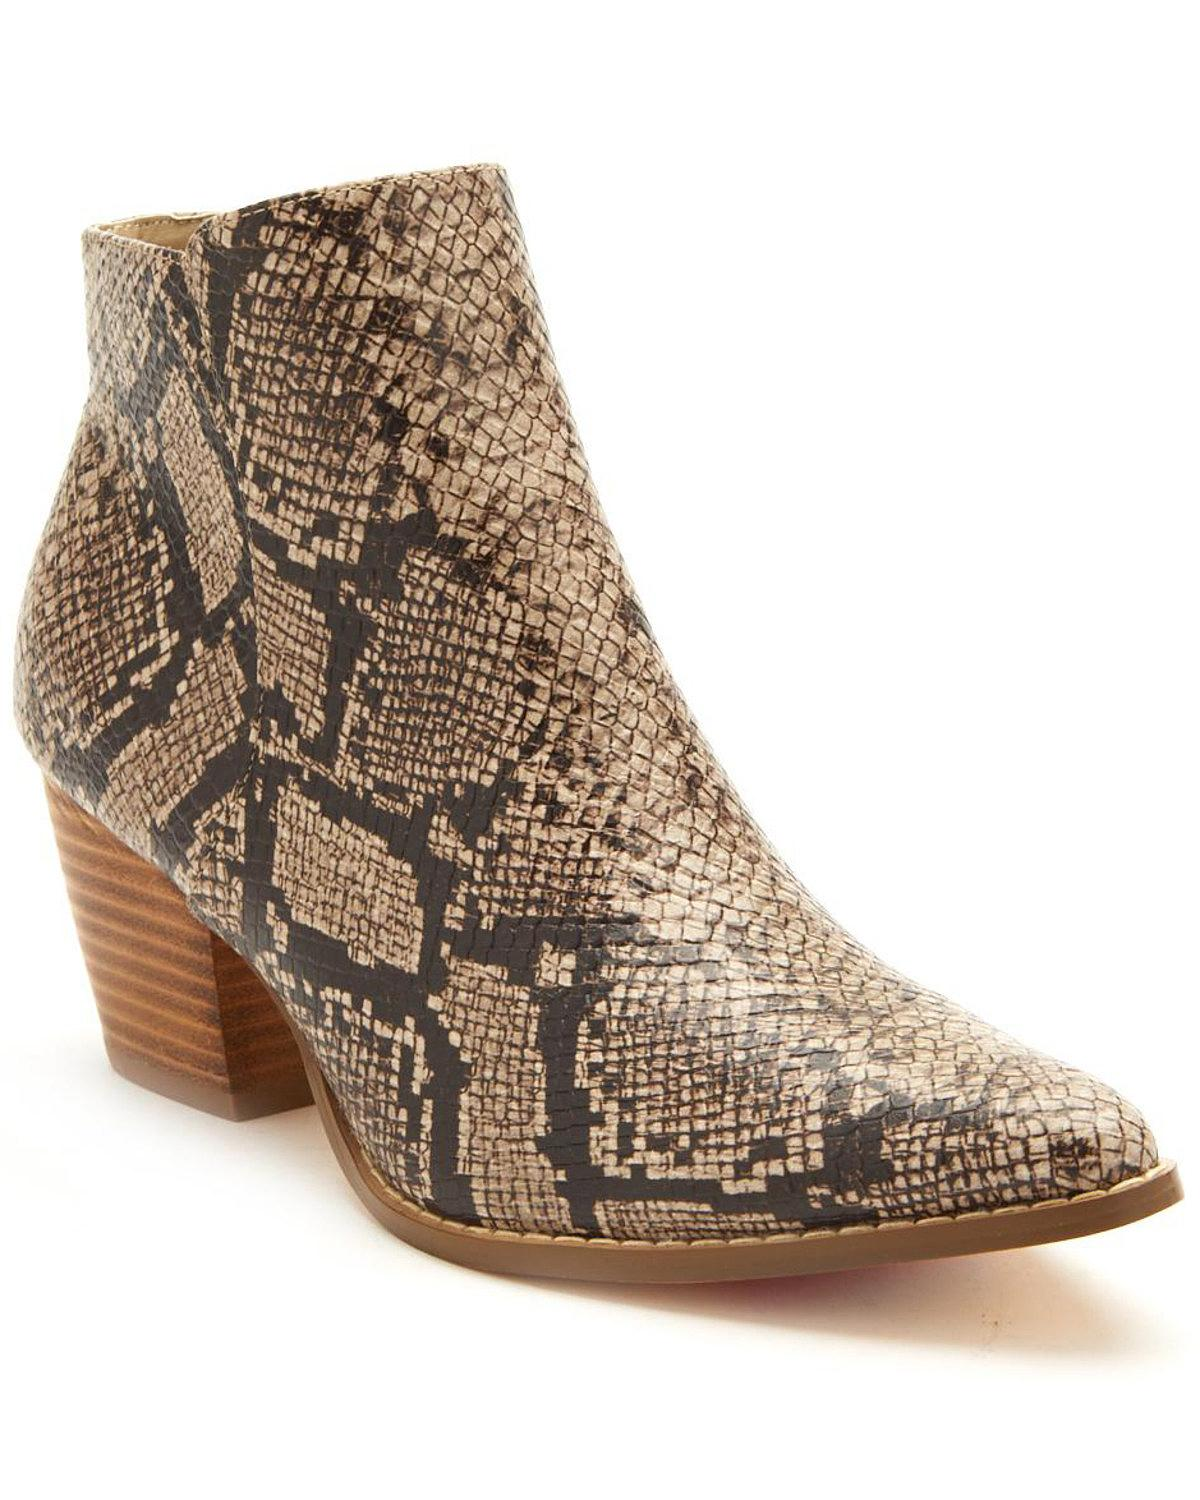 Coconuts By Matisse Wouomo Astoria Snake Print Fashion avvioies Medium Toe Taupe